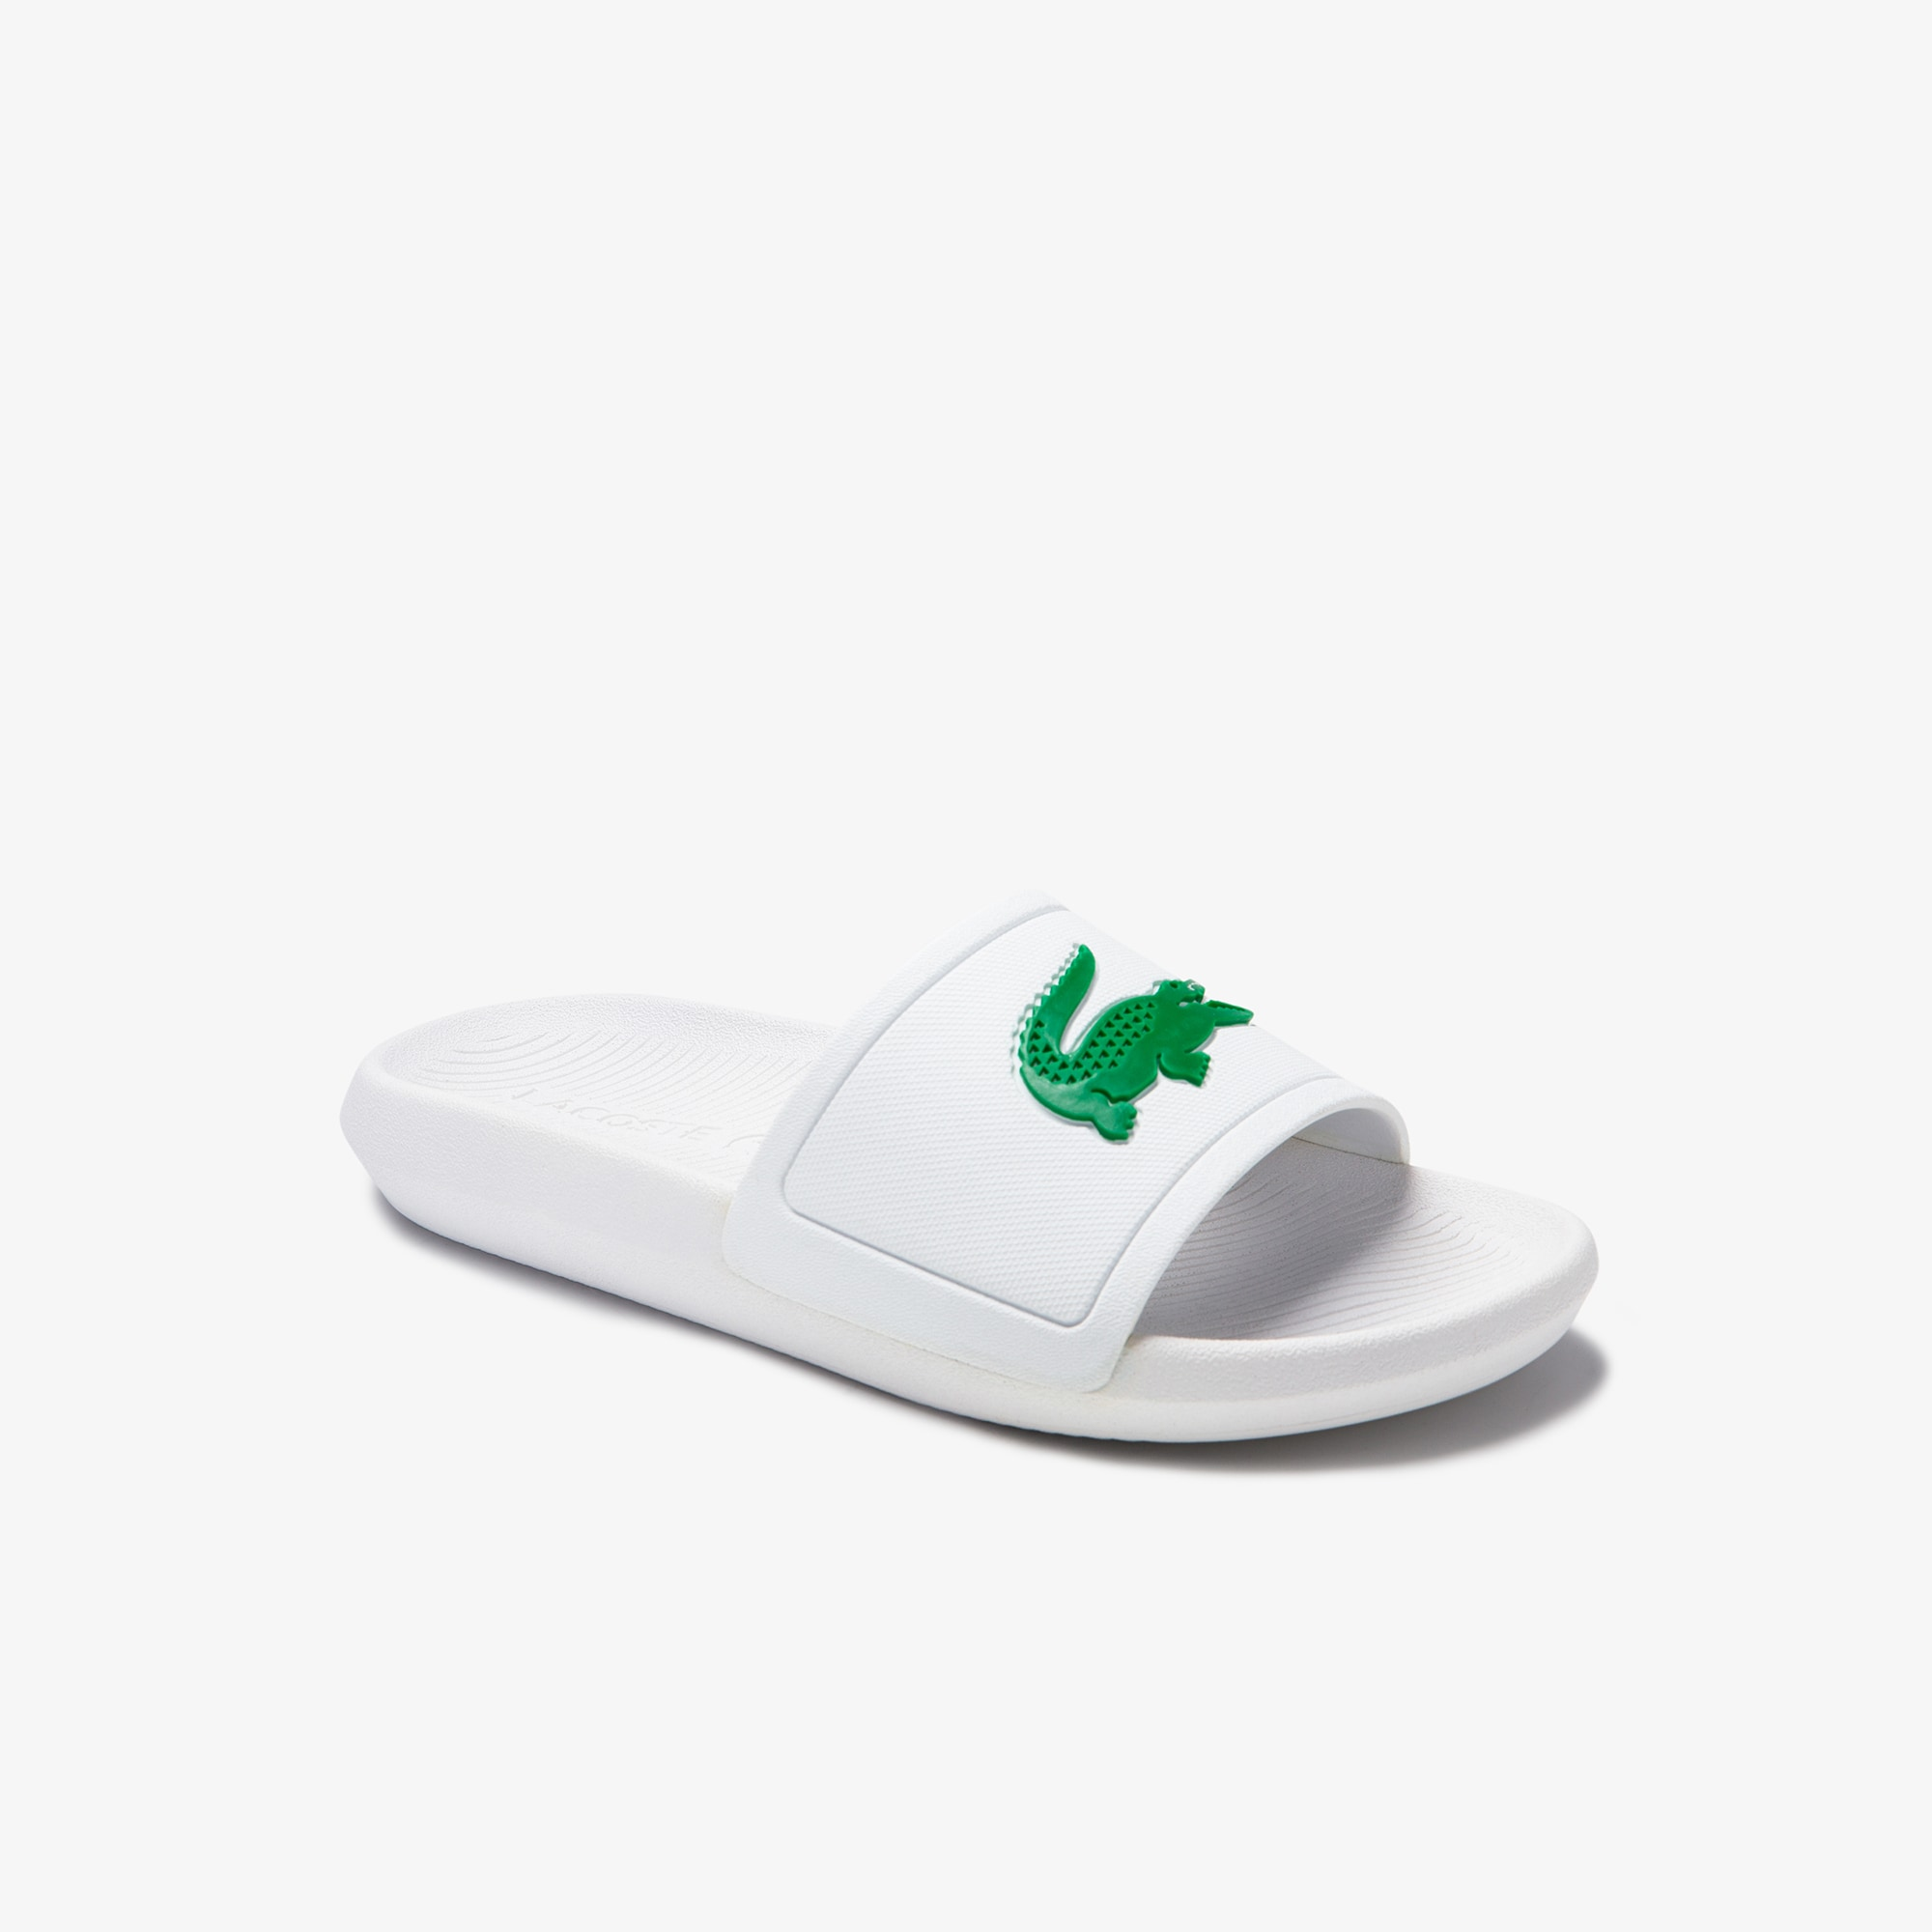 Women's Croco Rubber Slides